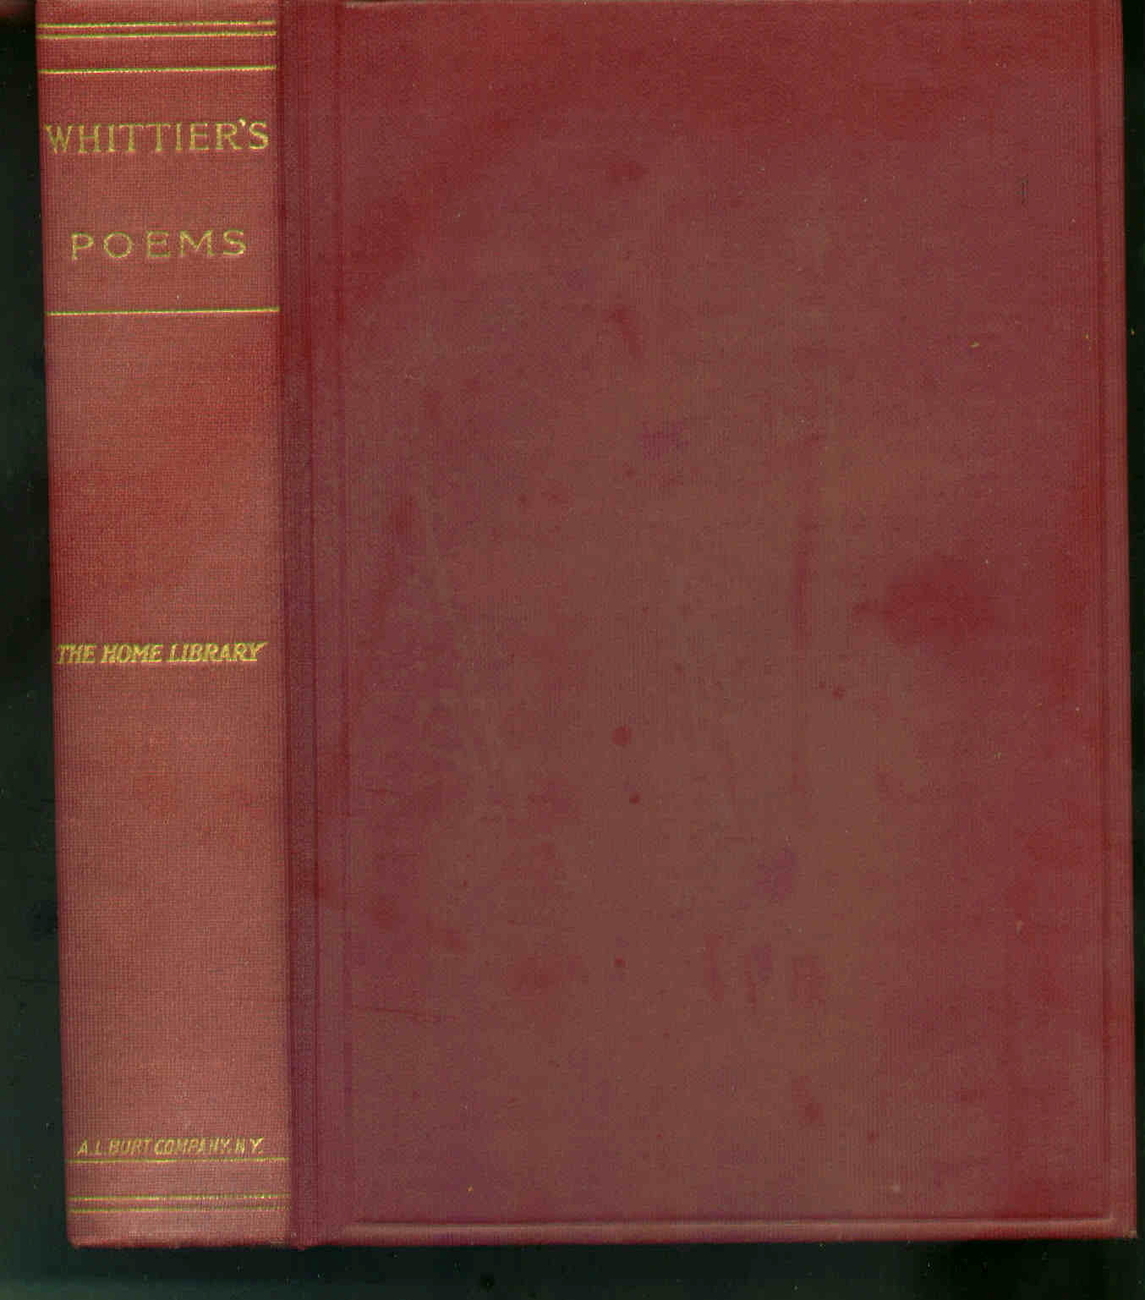 Whittier's Poems - John G. Whittier Hardcover 1904 collectible